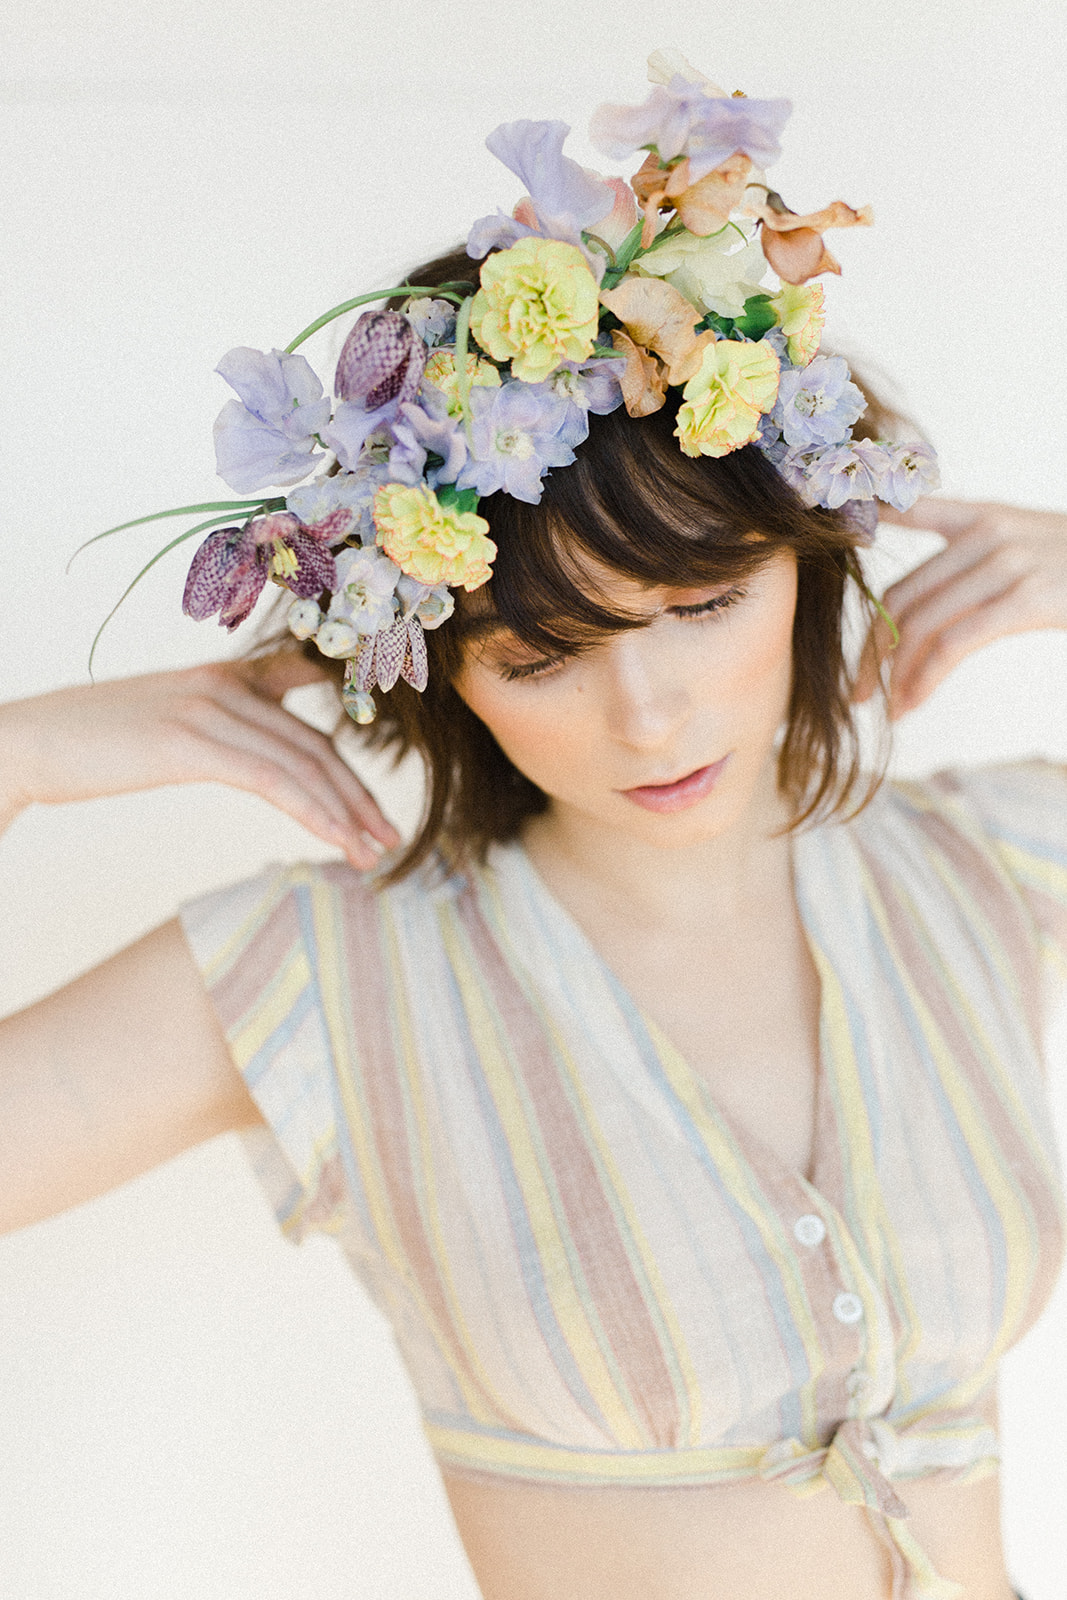 Flower-Crown-Shoot1-13.jpg